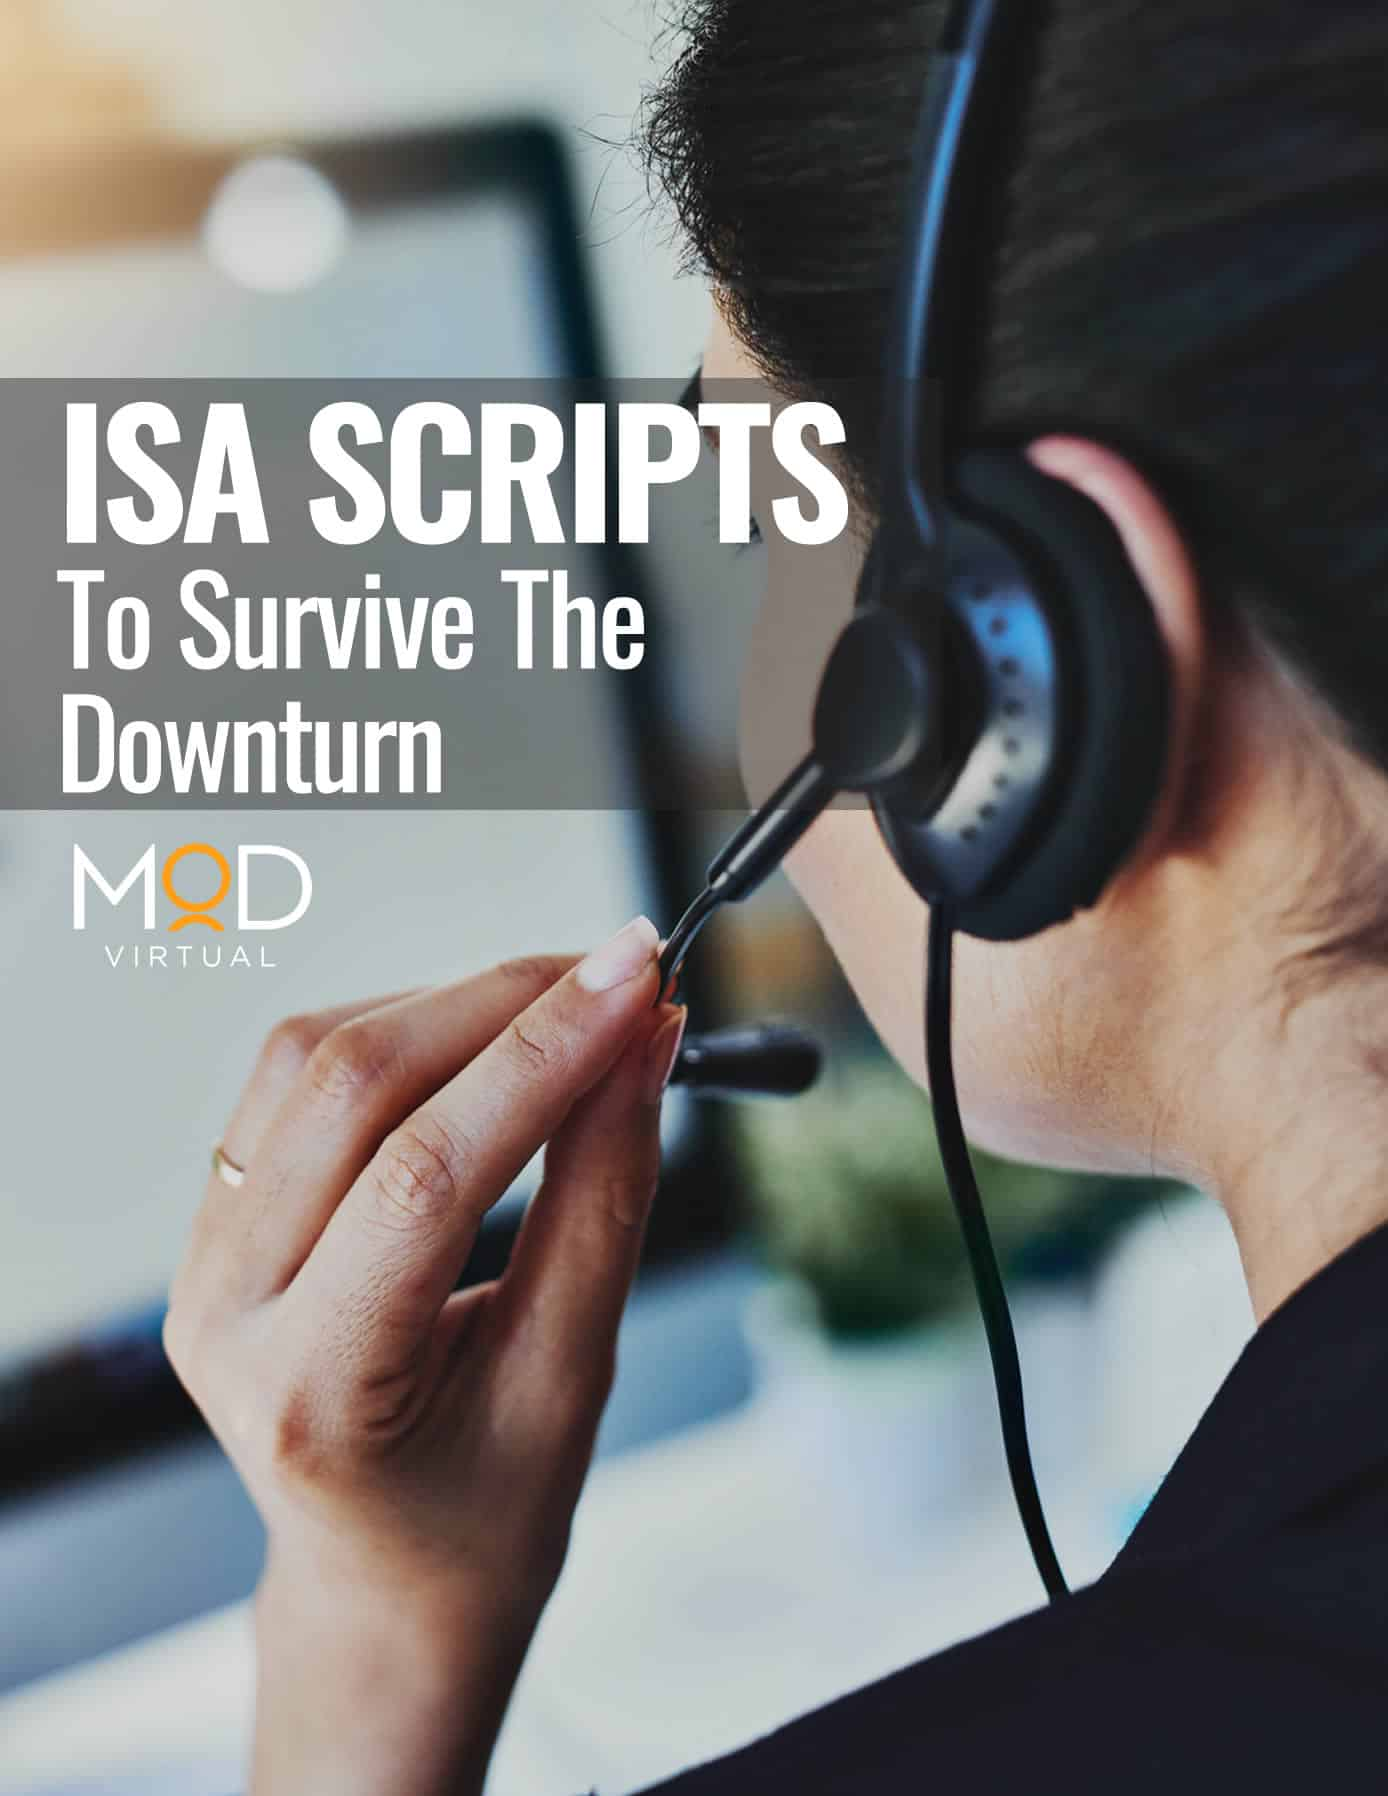 myoutdesk virtual assisant ISA Scripts to survive the downturn